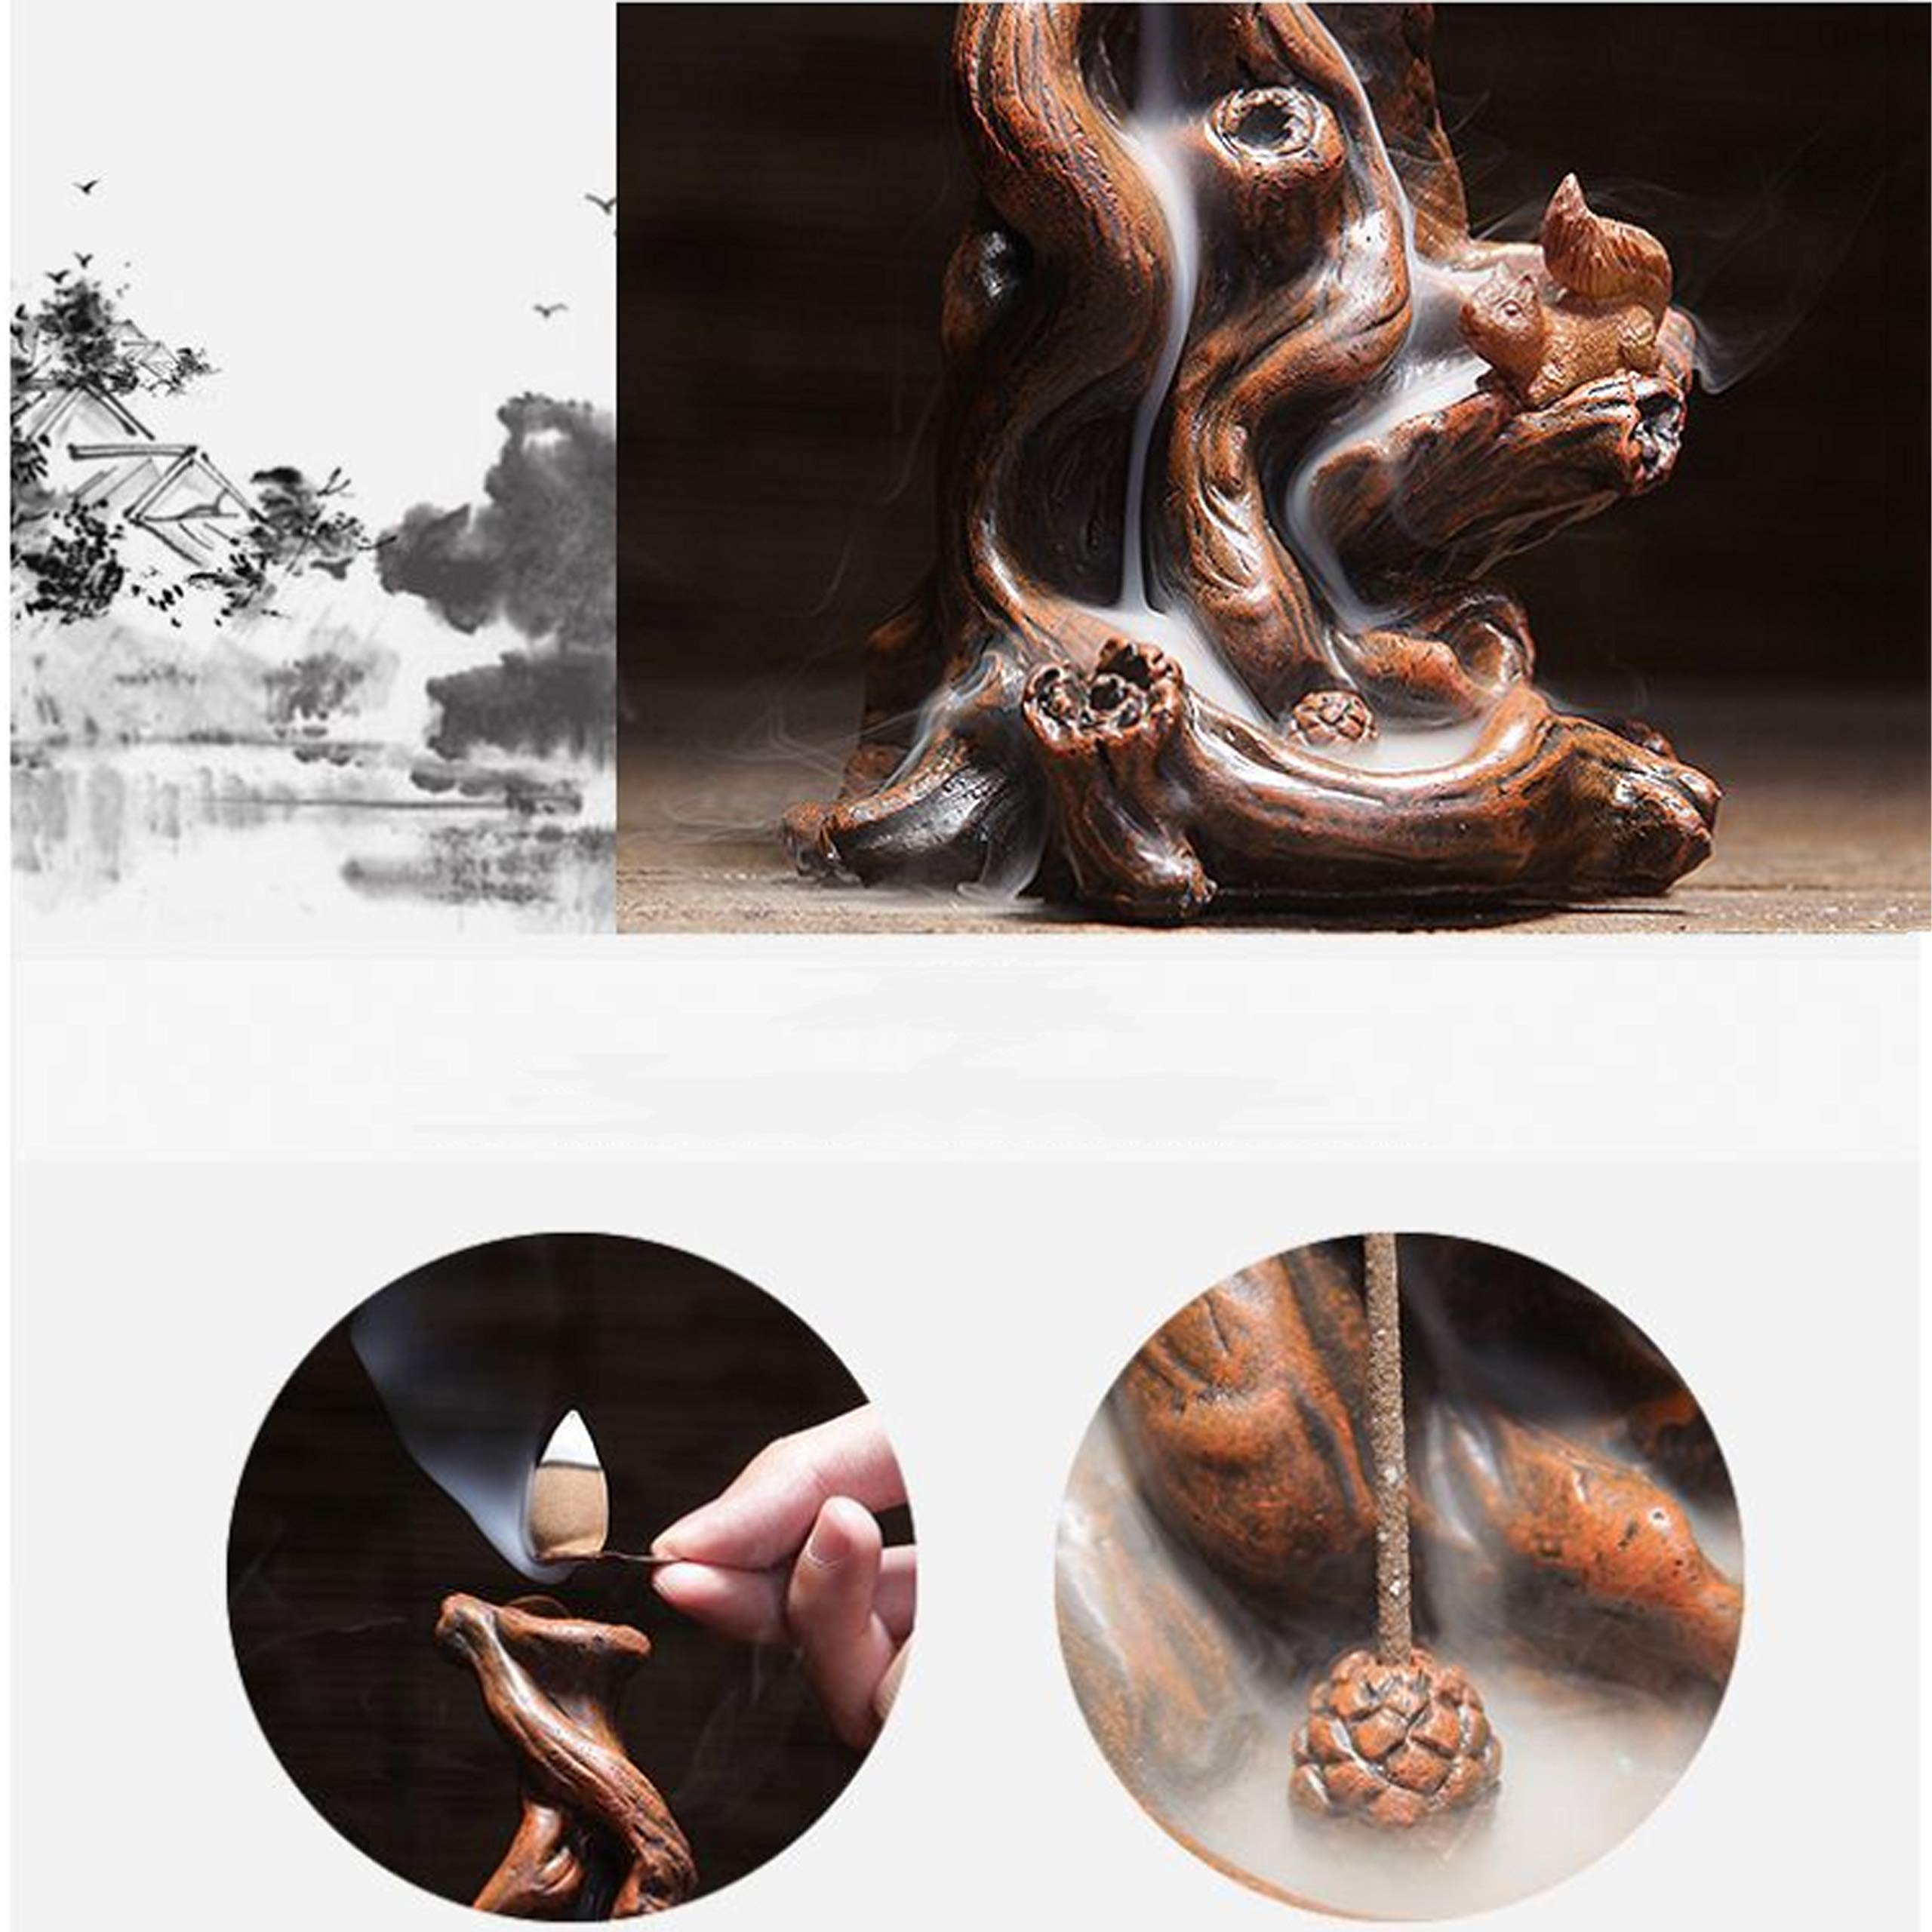 QIAN SHENG Backflow Incense Burner Incense Holder Ceramic Waterfall Incense Holder Home Decor Aromatherapy Ornament by QIAN SHENG (Image #7)